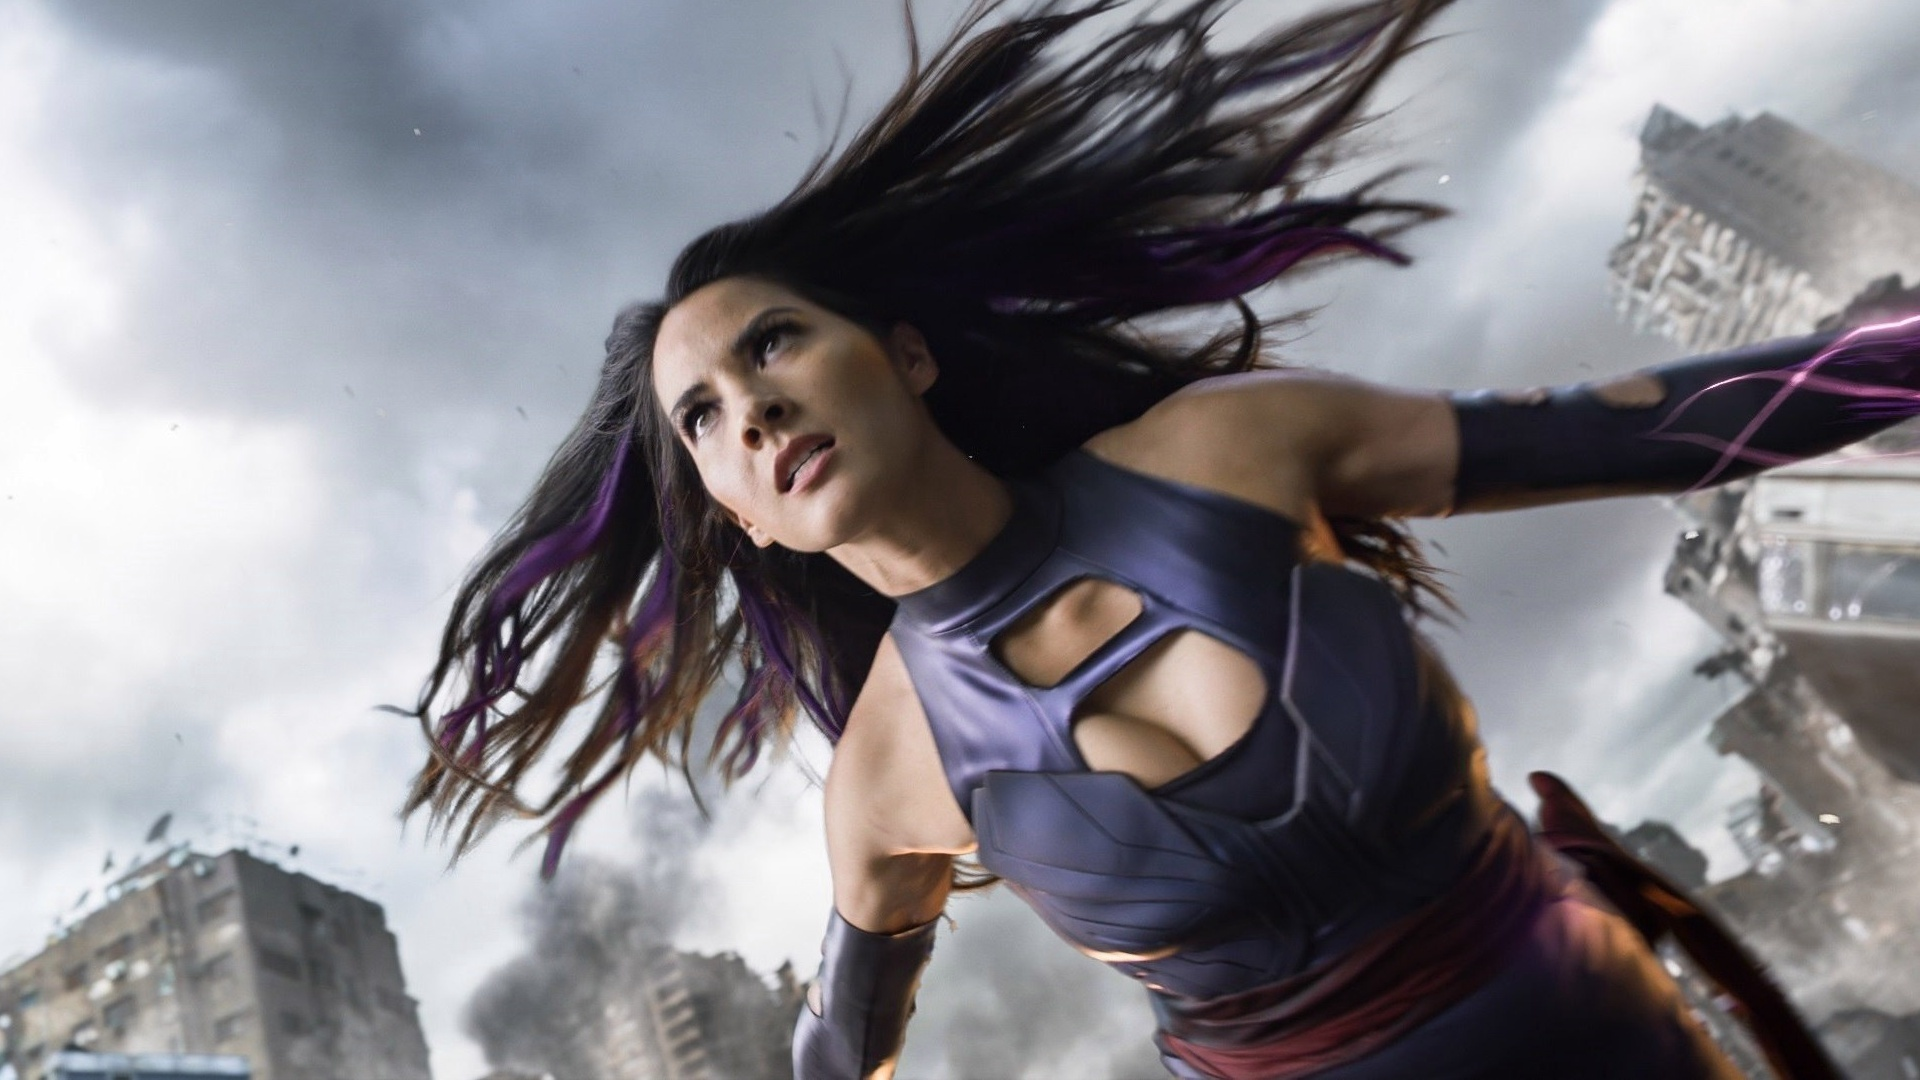 olivia munn angry x-men apocalypse wallpapers - 1920x1080 - 433283